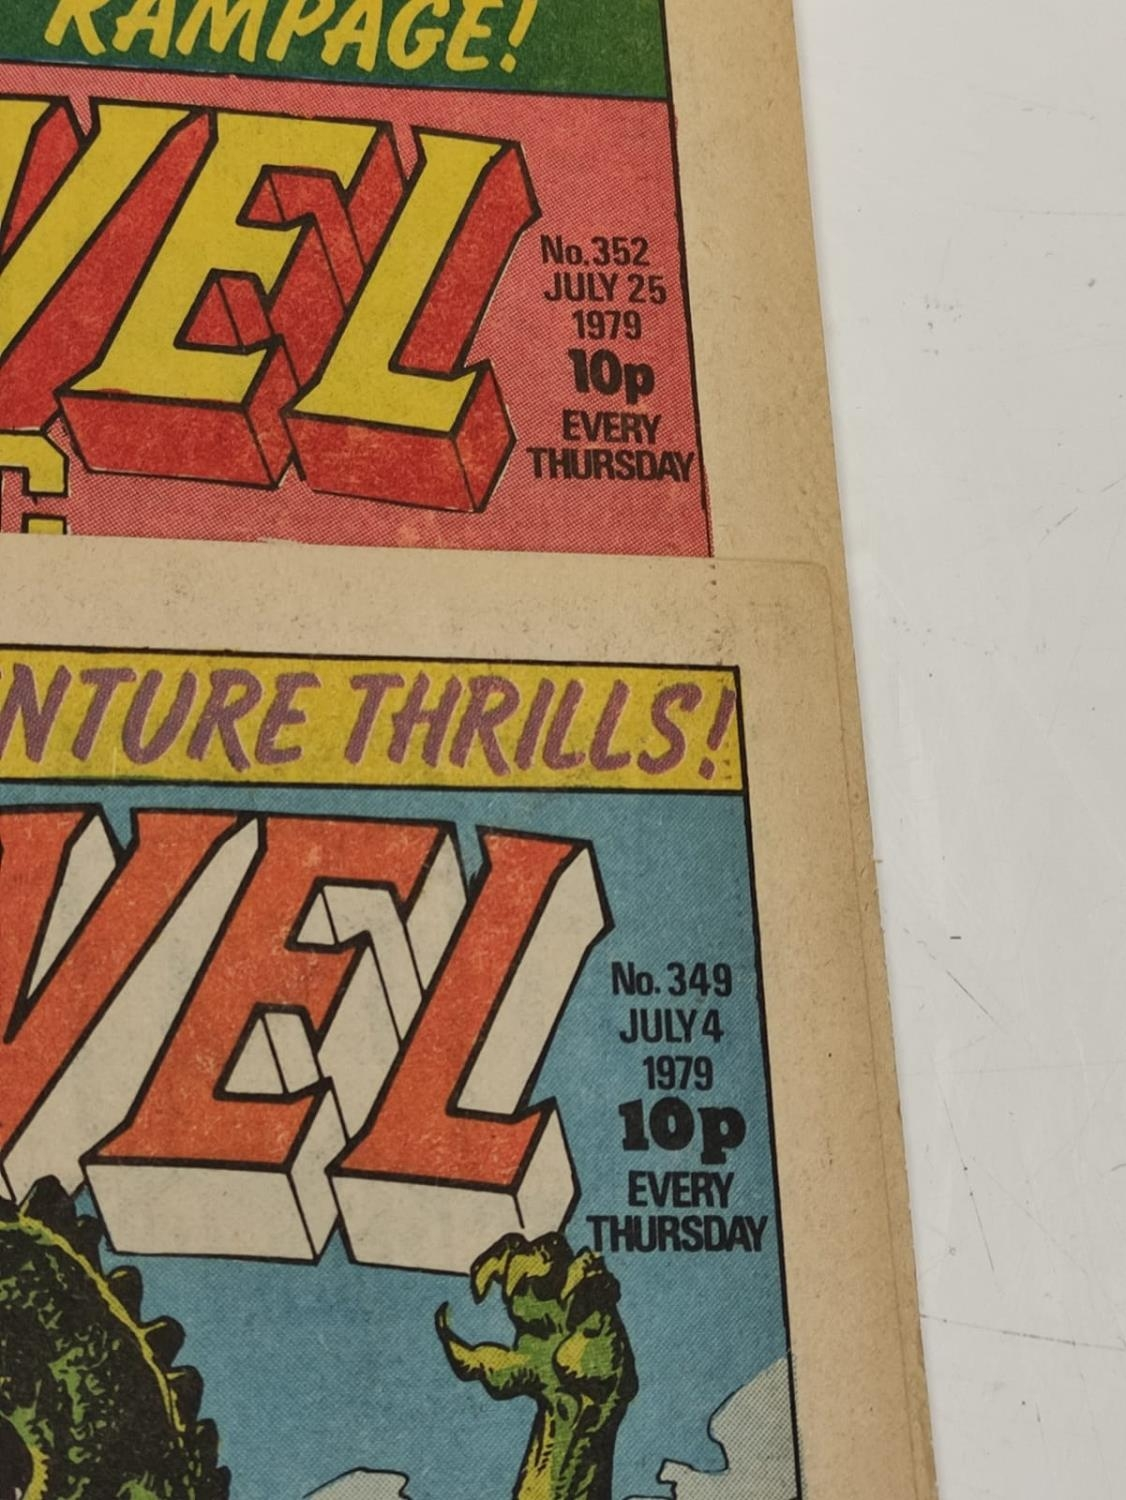 20 editions of mixed Vintage Marvel Comics. - Image 34 of 56